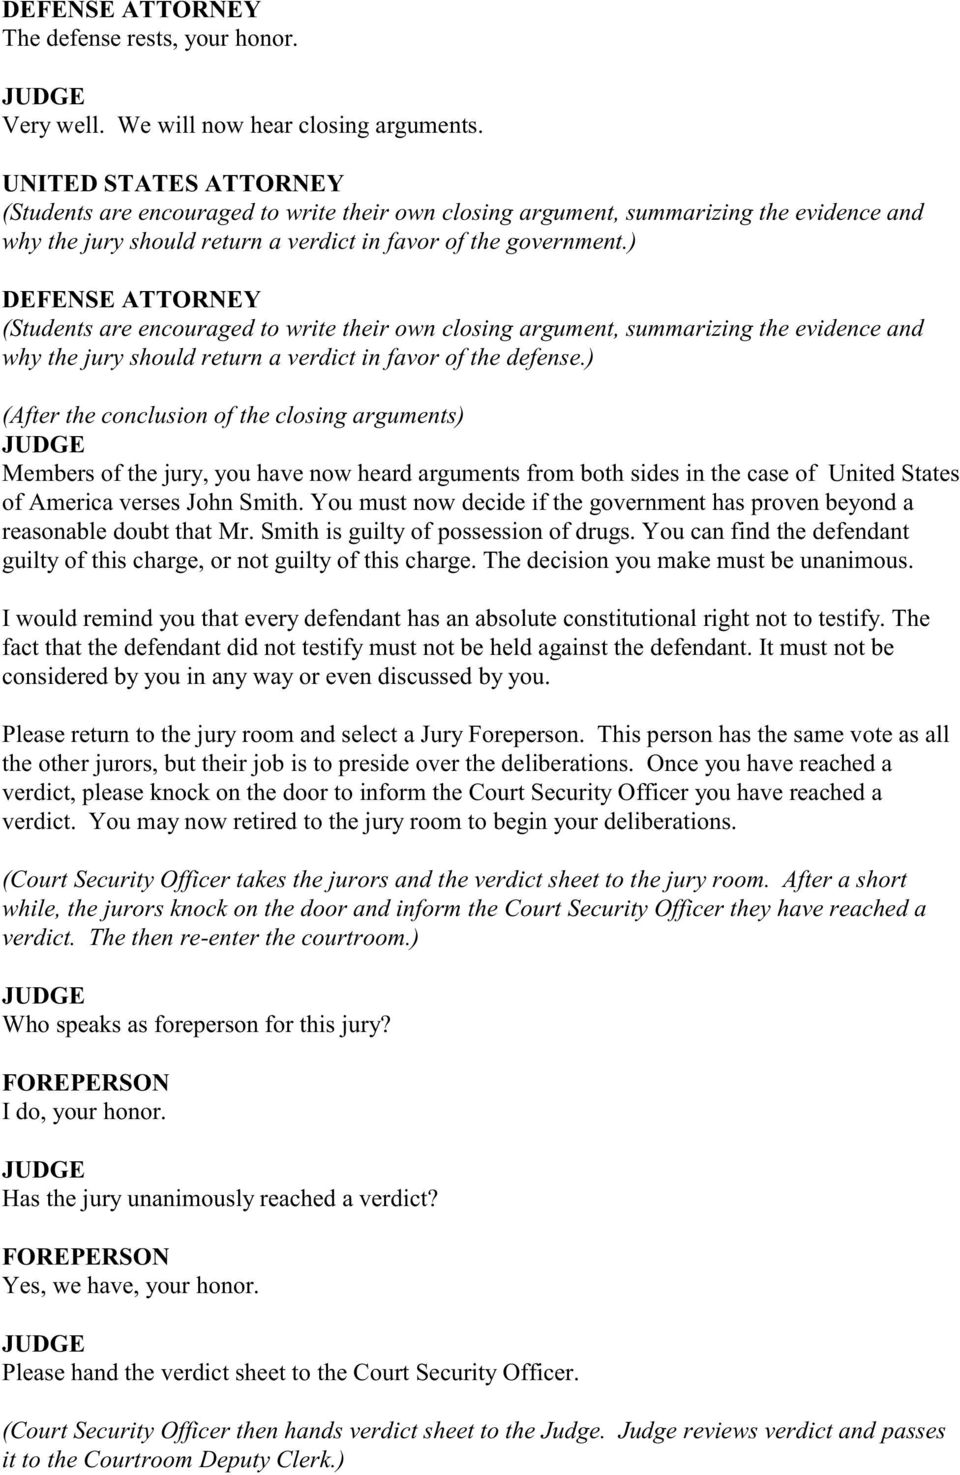 Students Are Encouraged To Write Their Own Closing Argument Summarizing The Evidence And